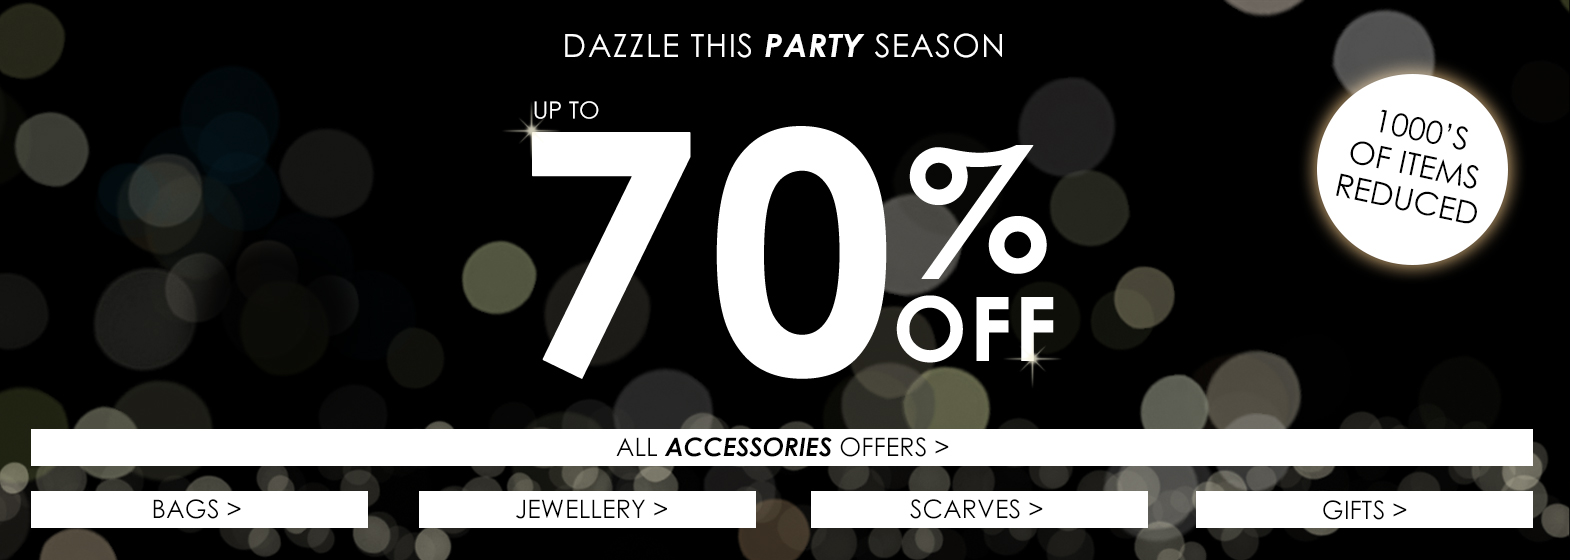 Black Friday Accessories Offers >